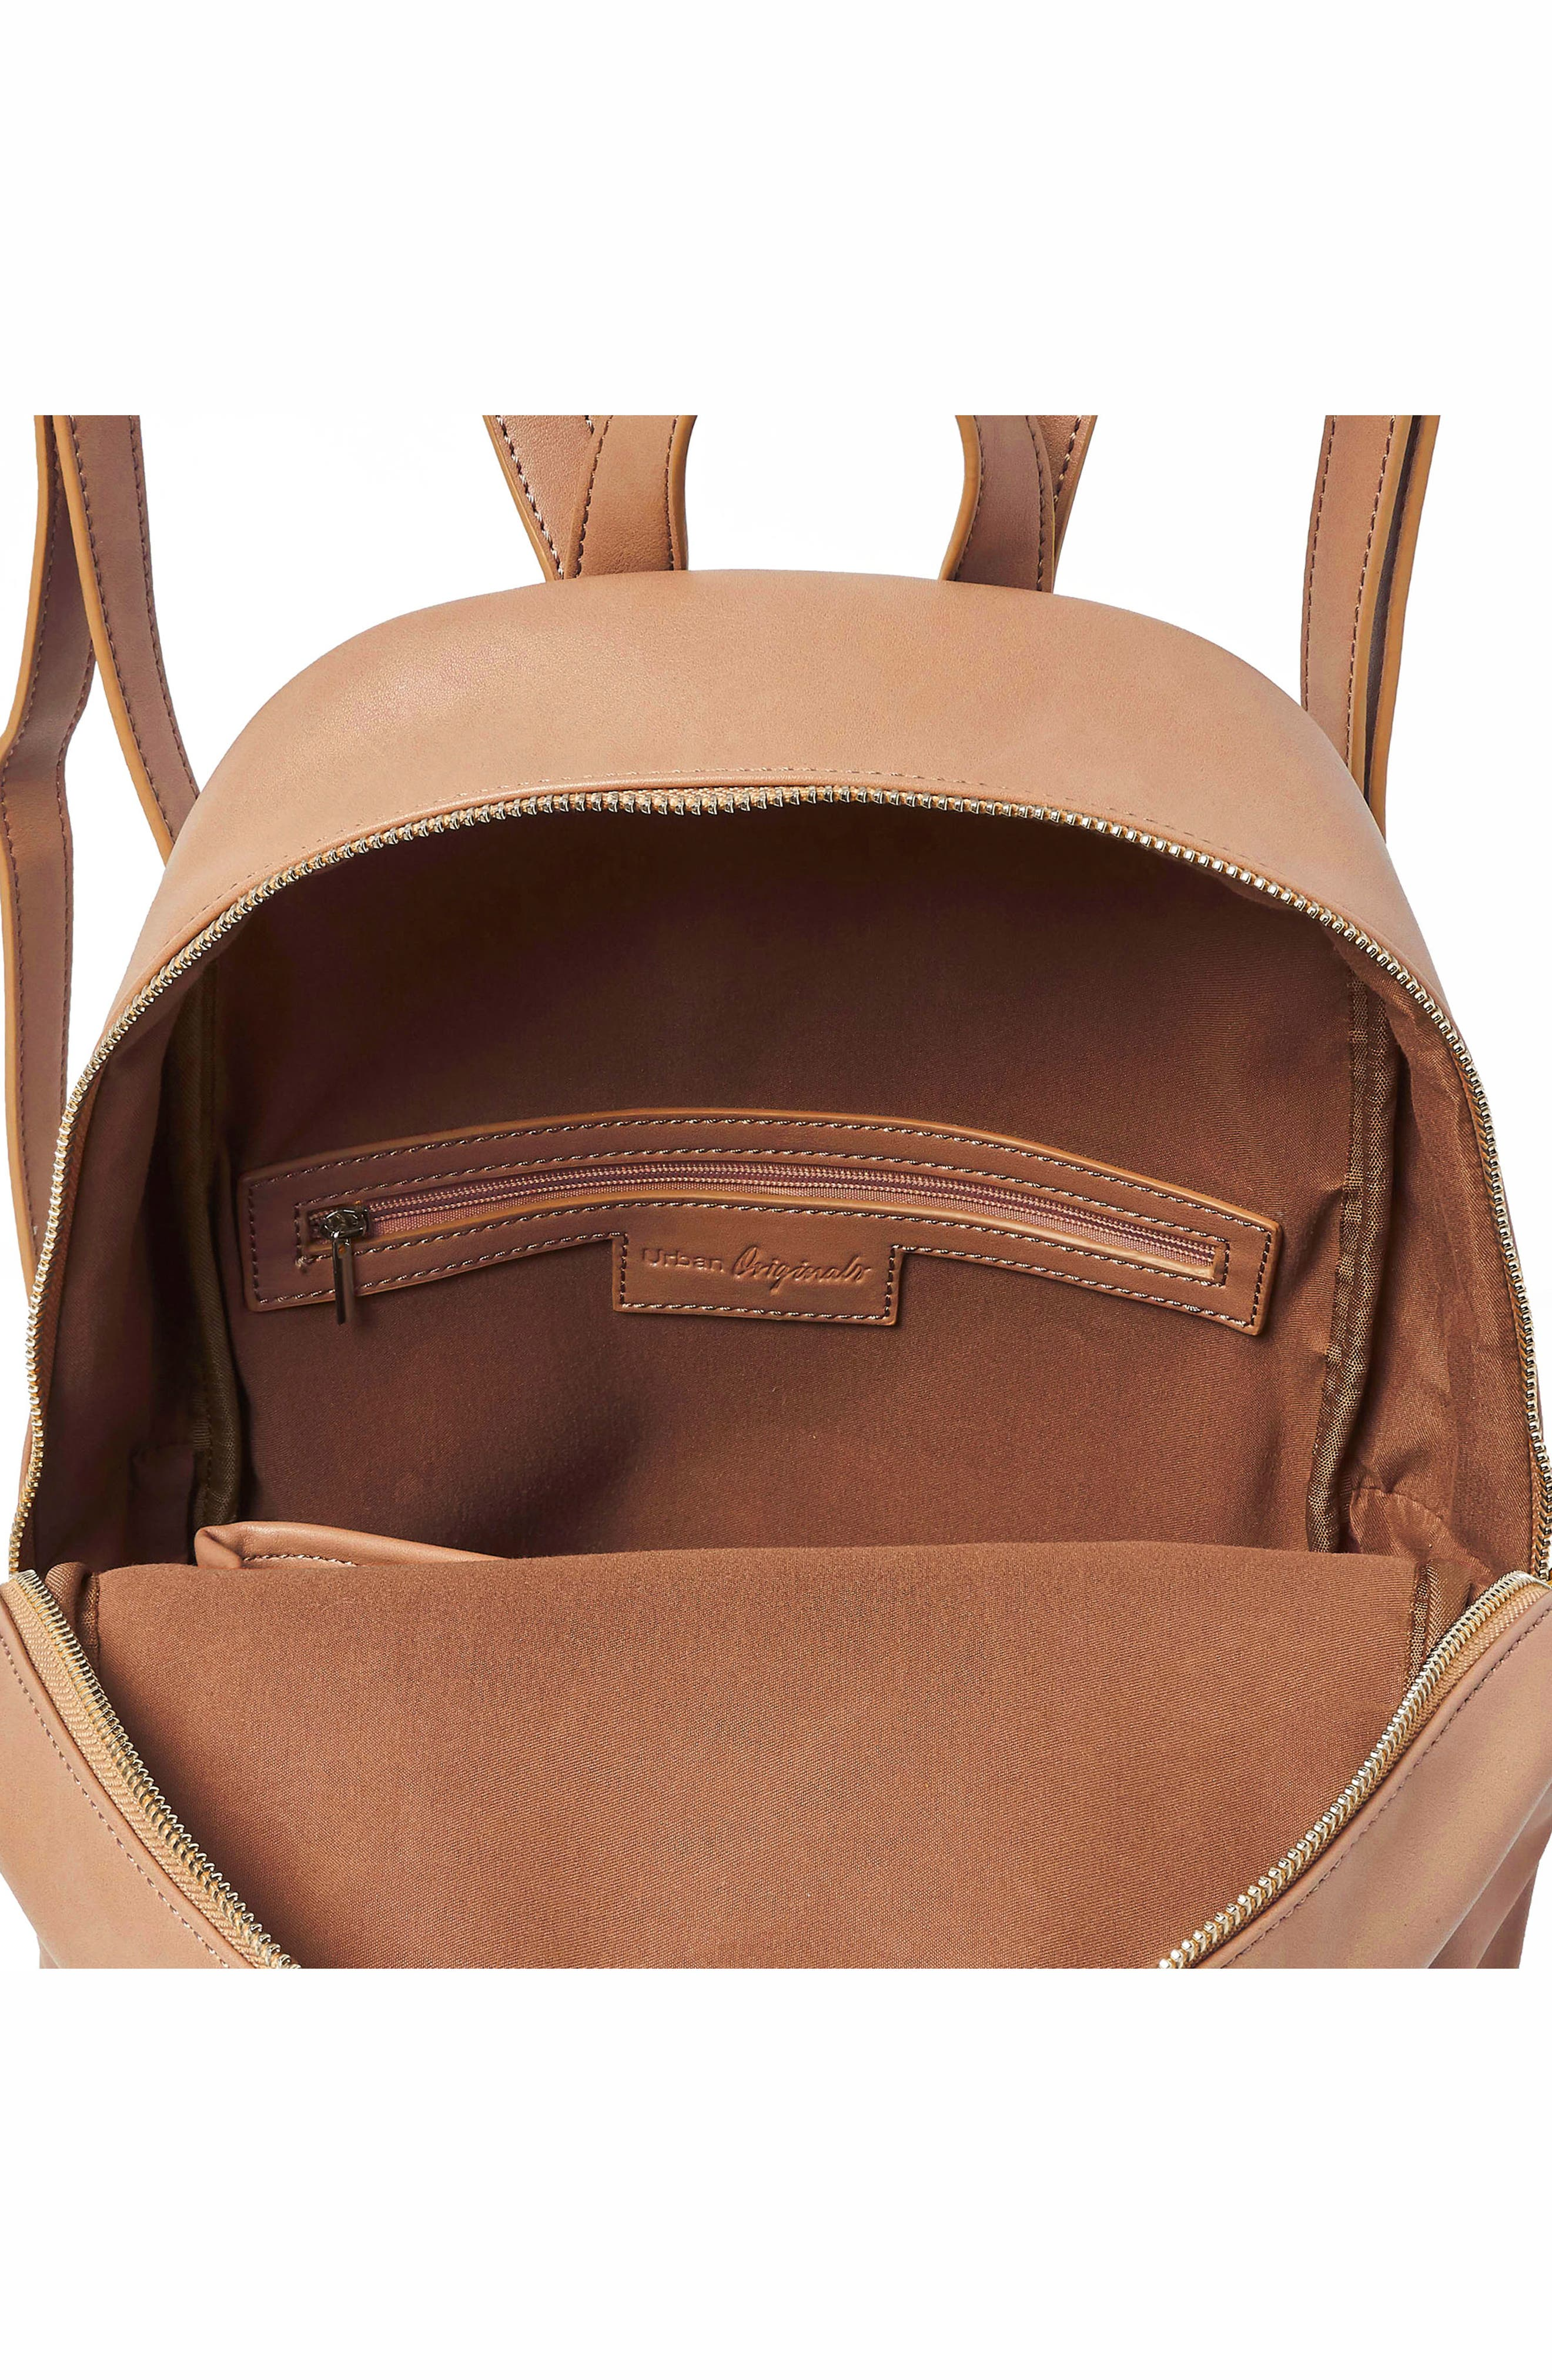 Sublime Vegan Leather Backpack,                             Alternate thumbnail 3, color,                             Nude